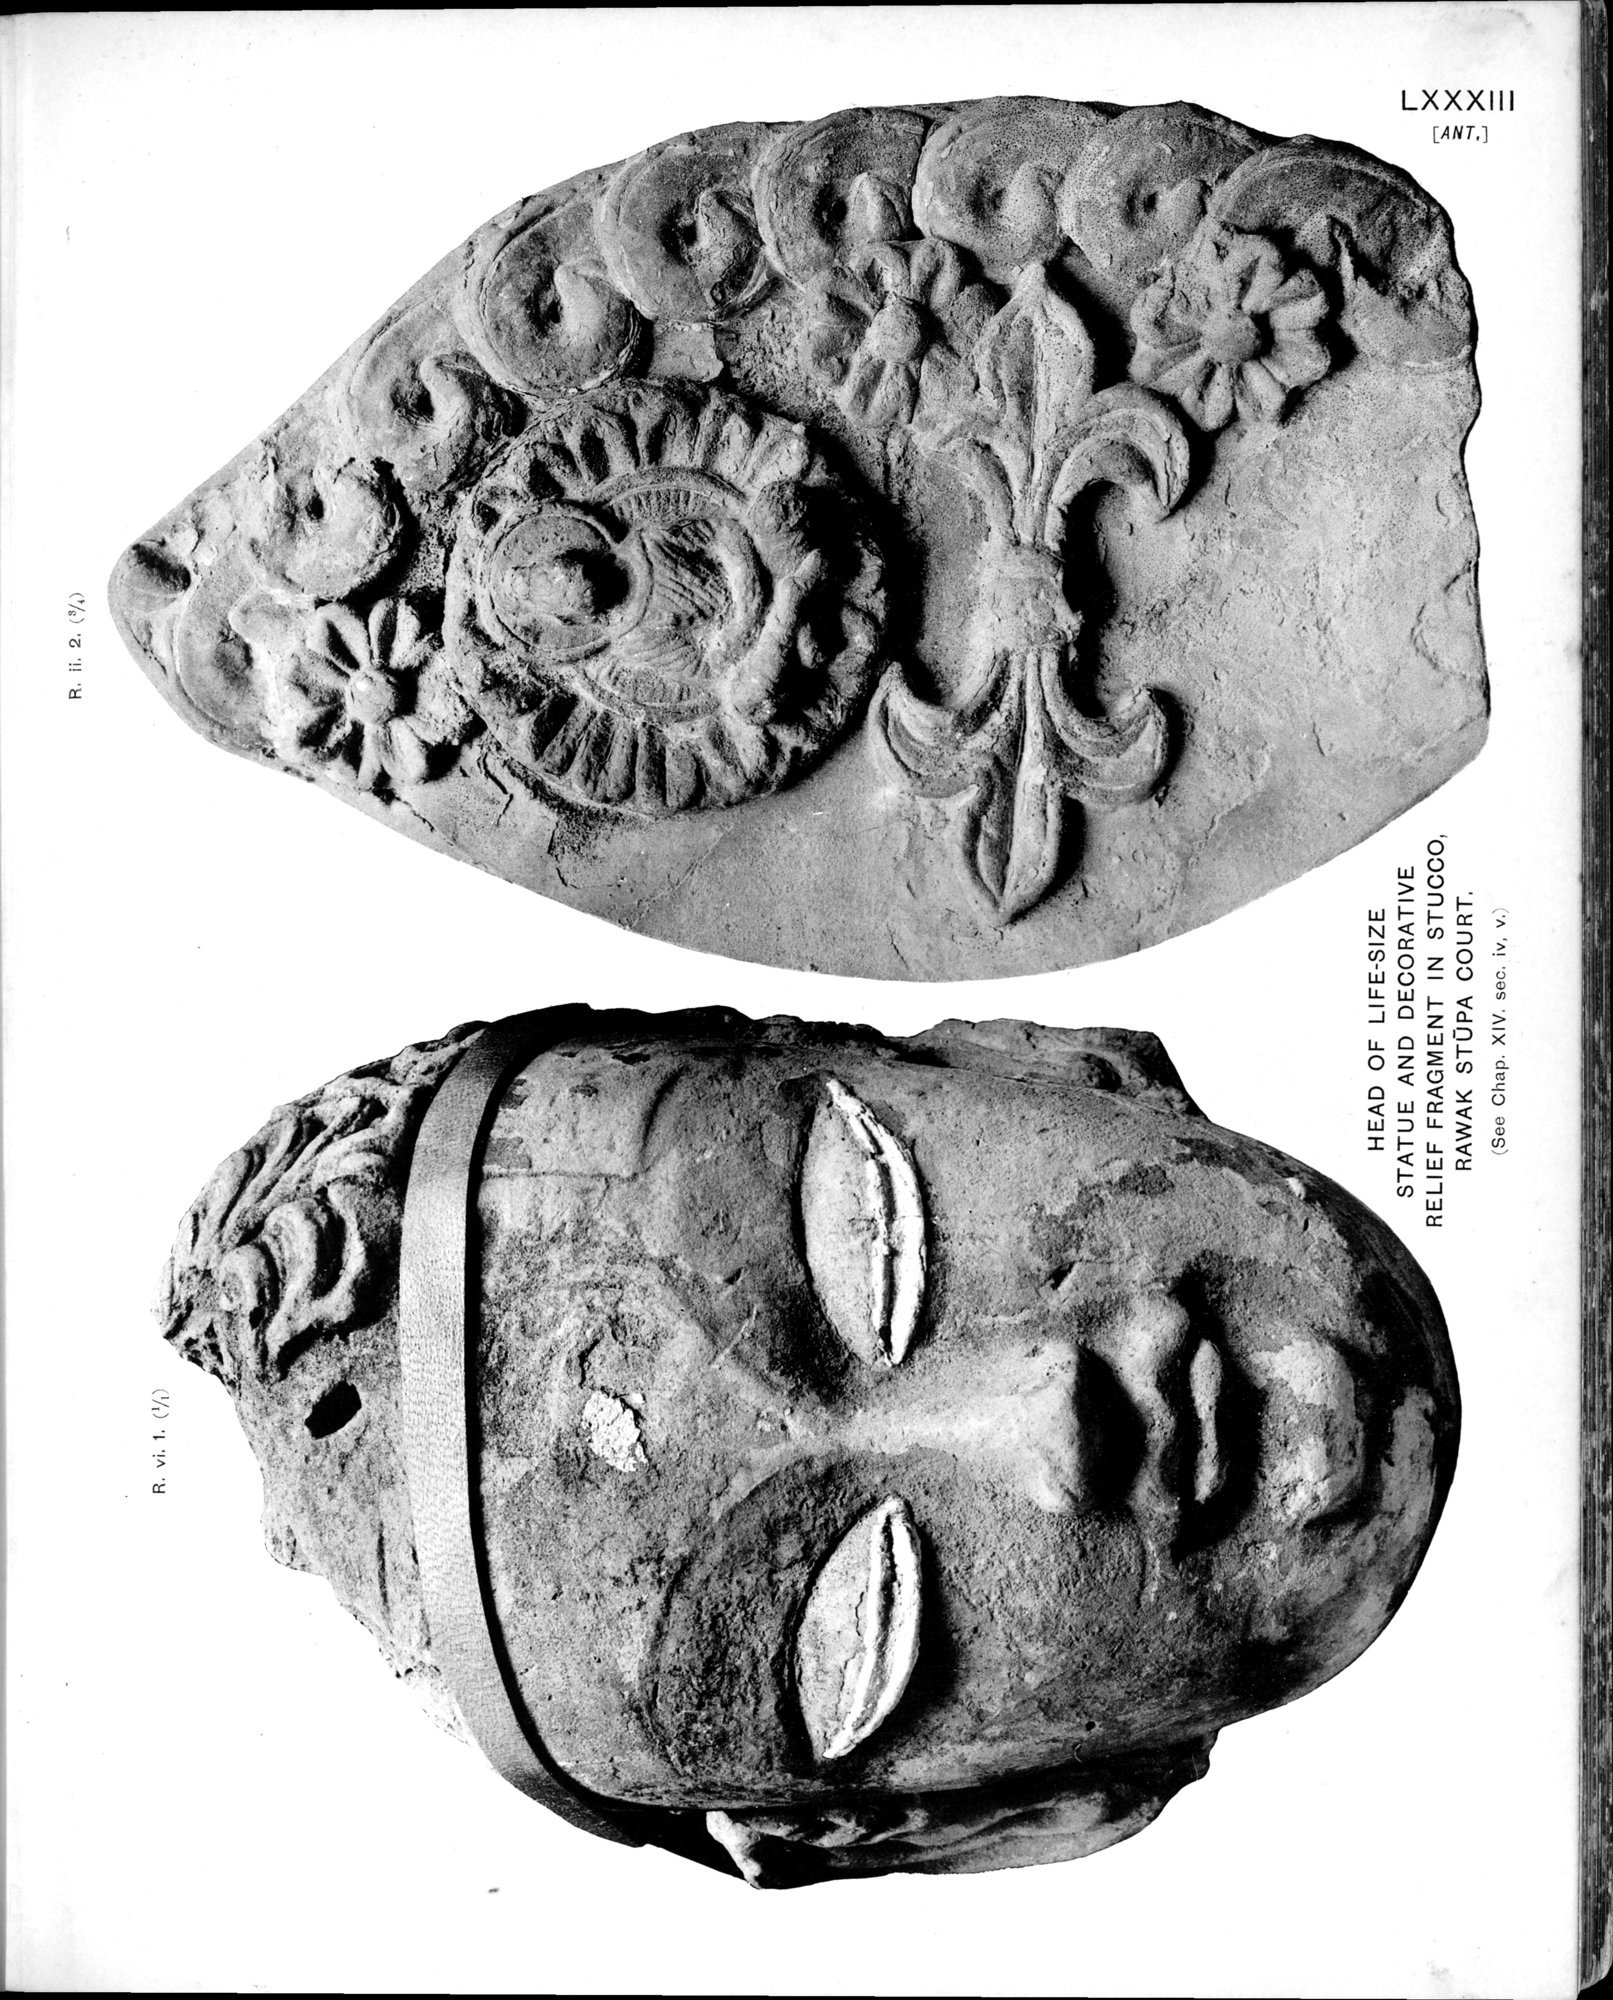 Ancient Khotan : vol.2 / Page 177 (Grayscale High Resolution Image)